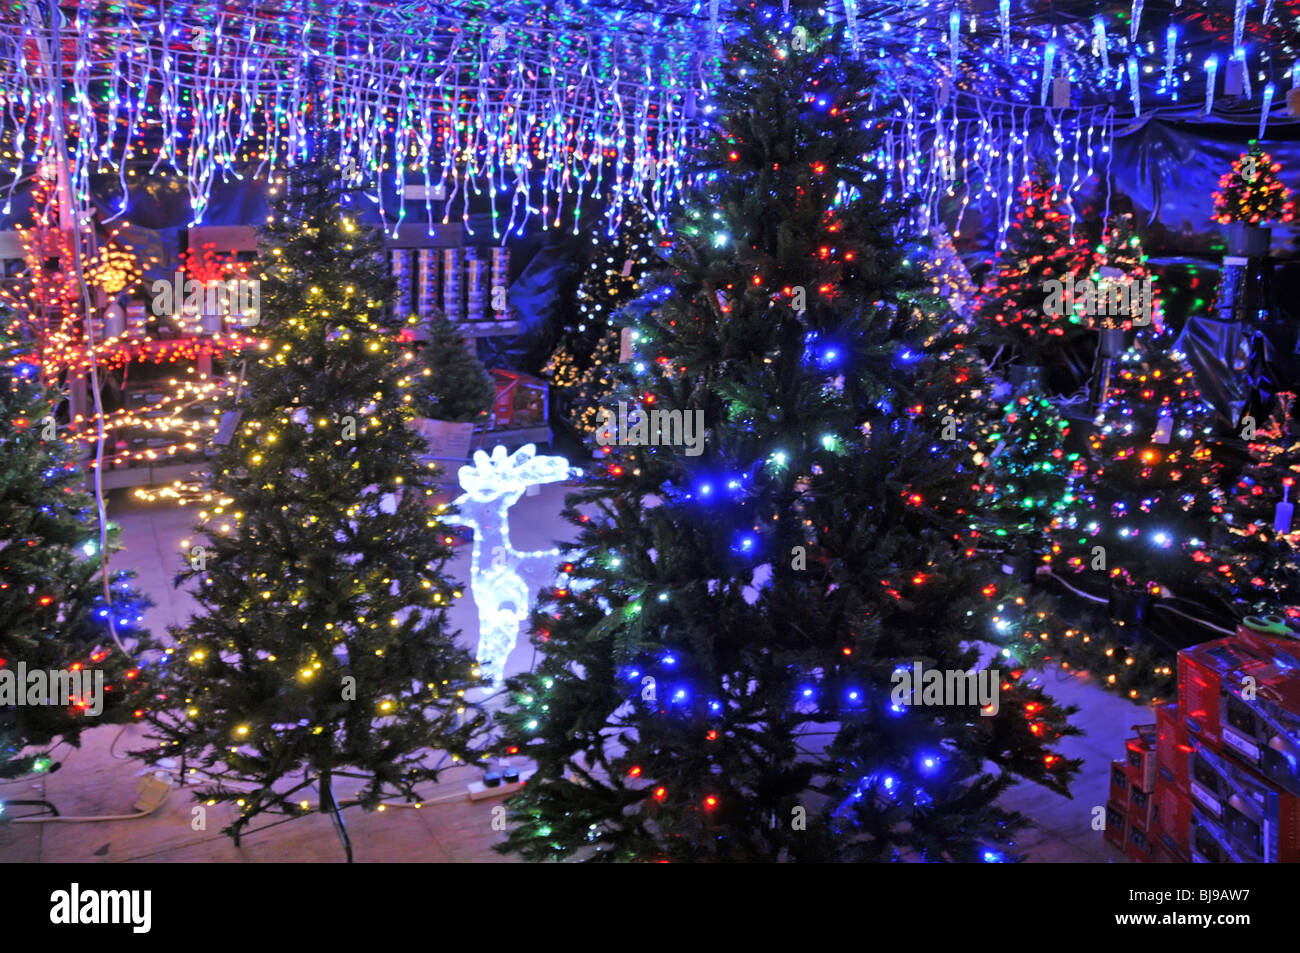 garden center indoor display of christmas trees and lights for sale stock image